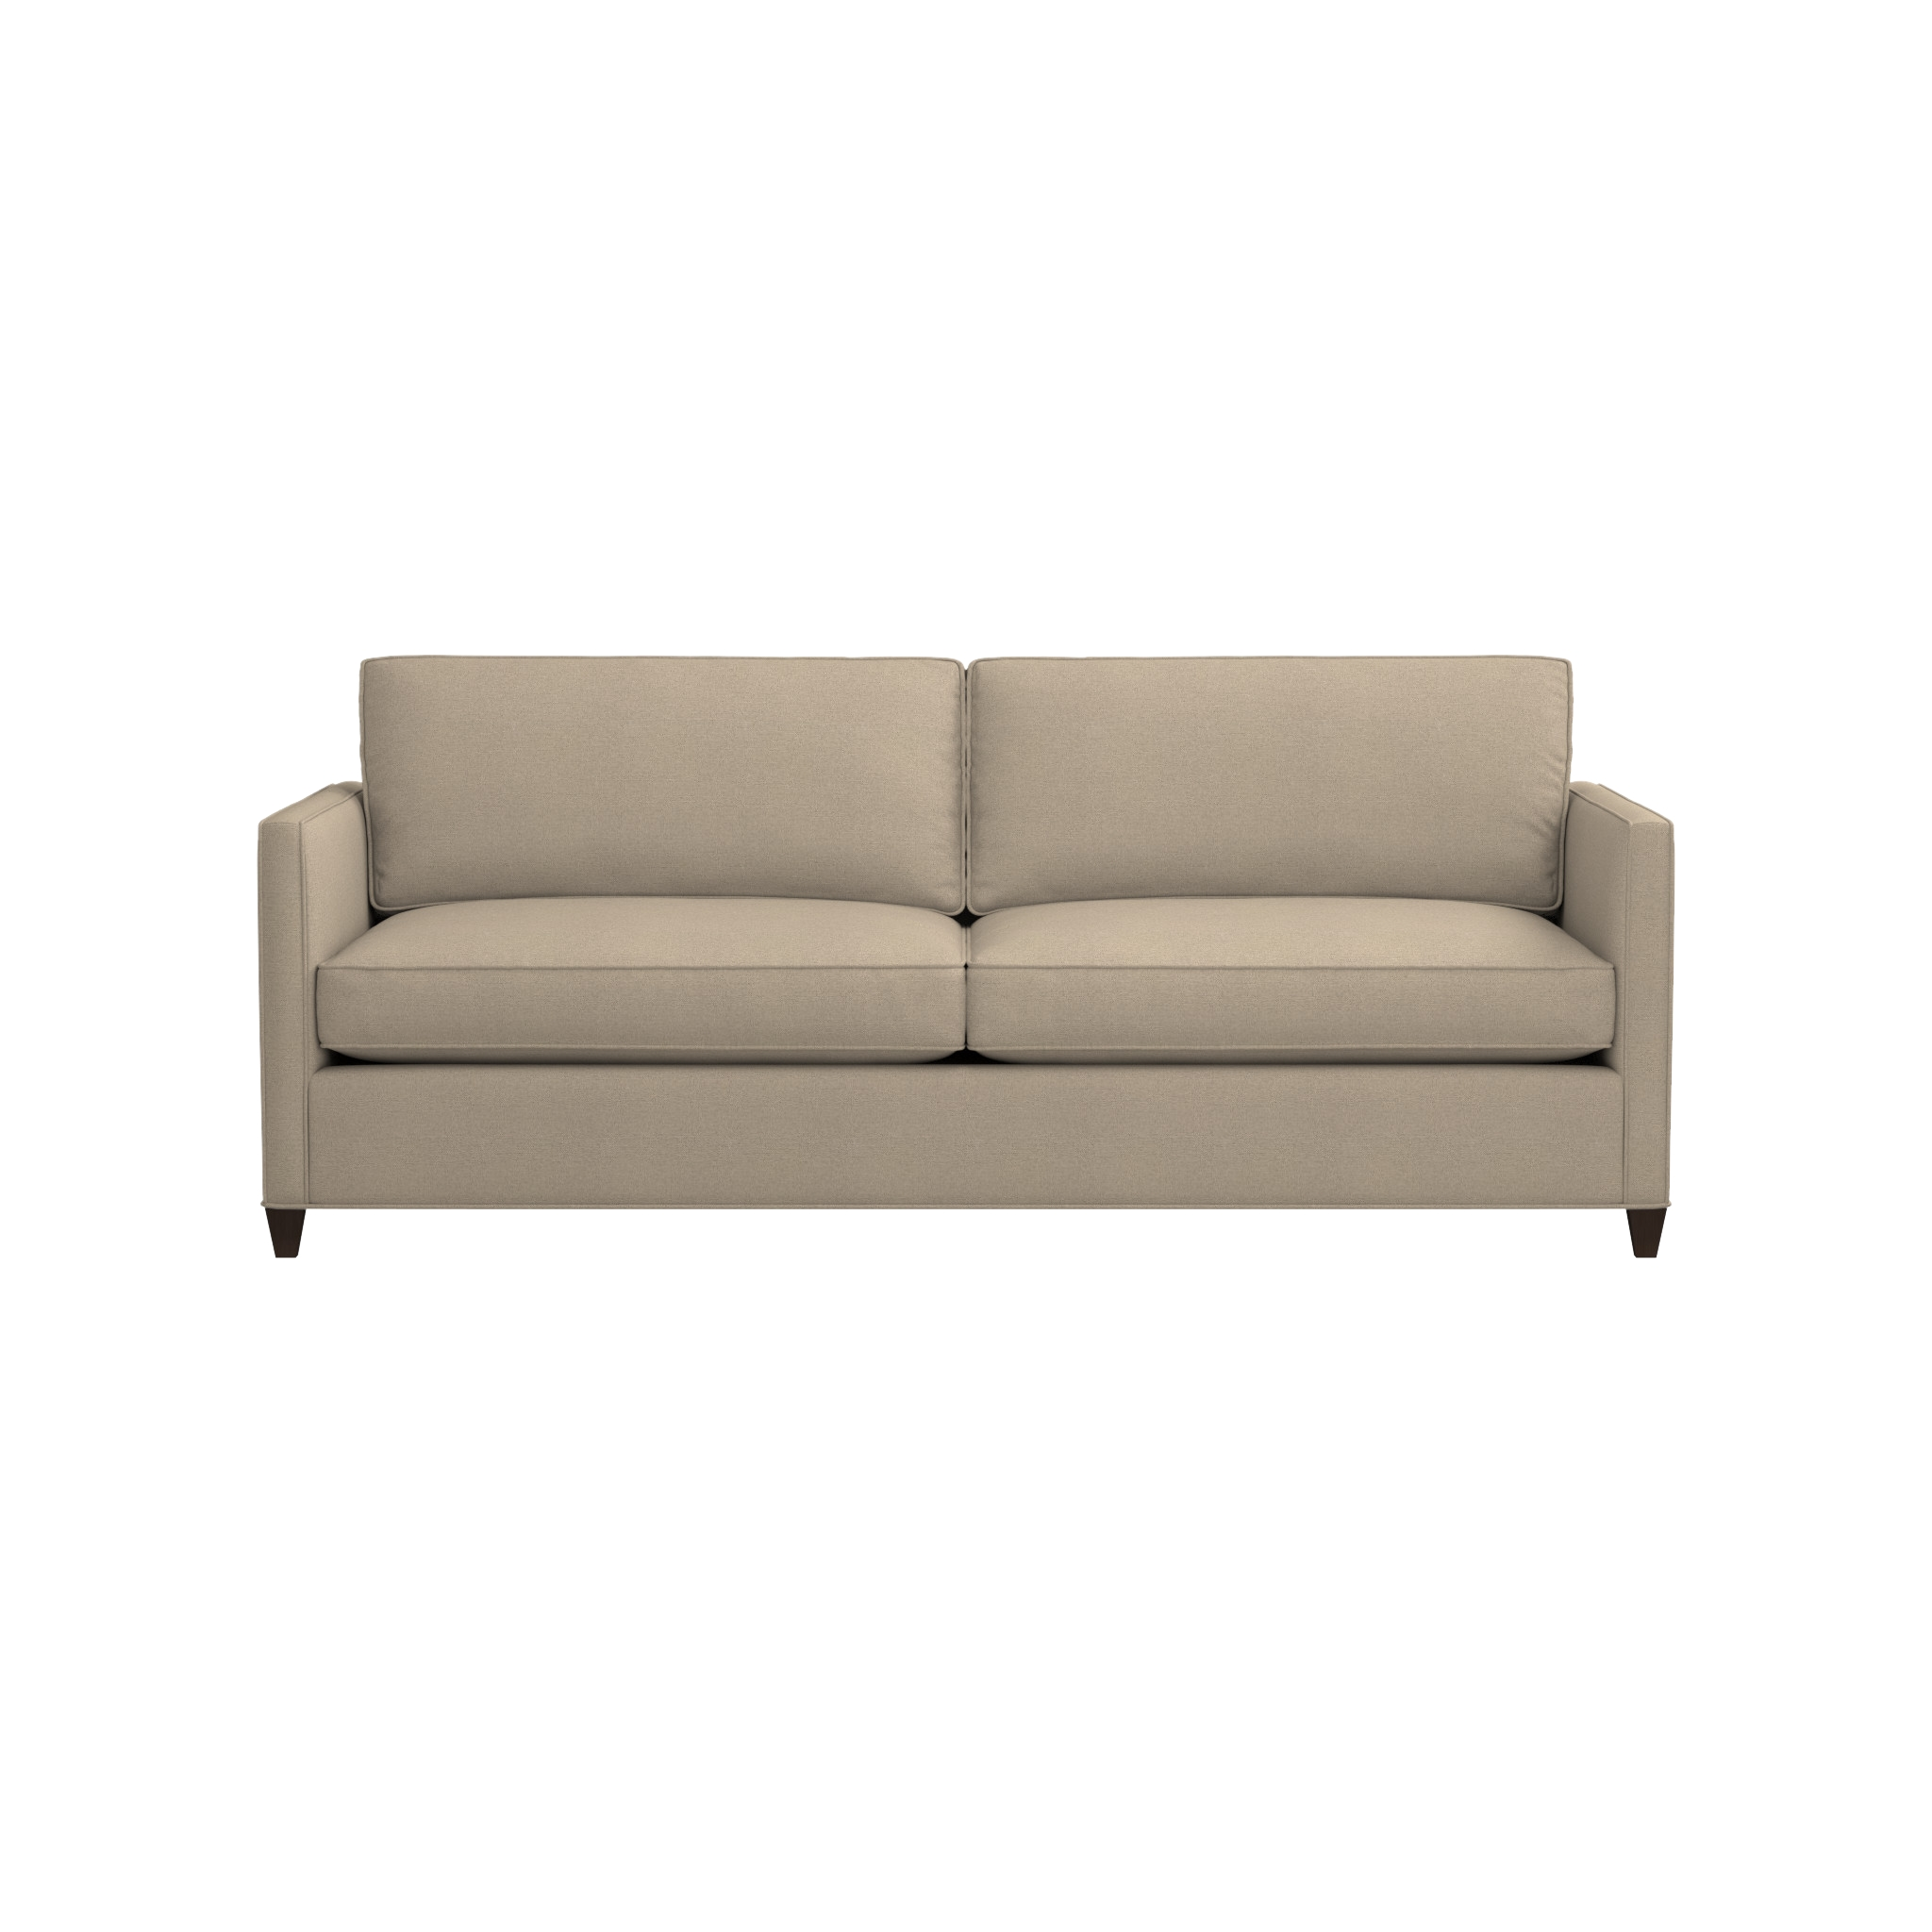 Furniture: Wrap Around Couch | Sears Furniture Outlet | Camden Sofa Pertaining To Sears Sofa (Image 13 of 20)